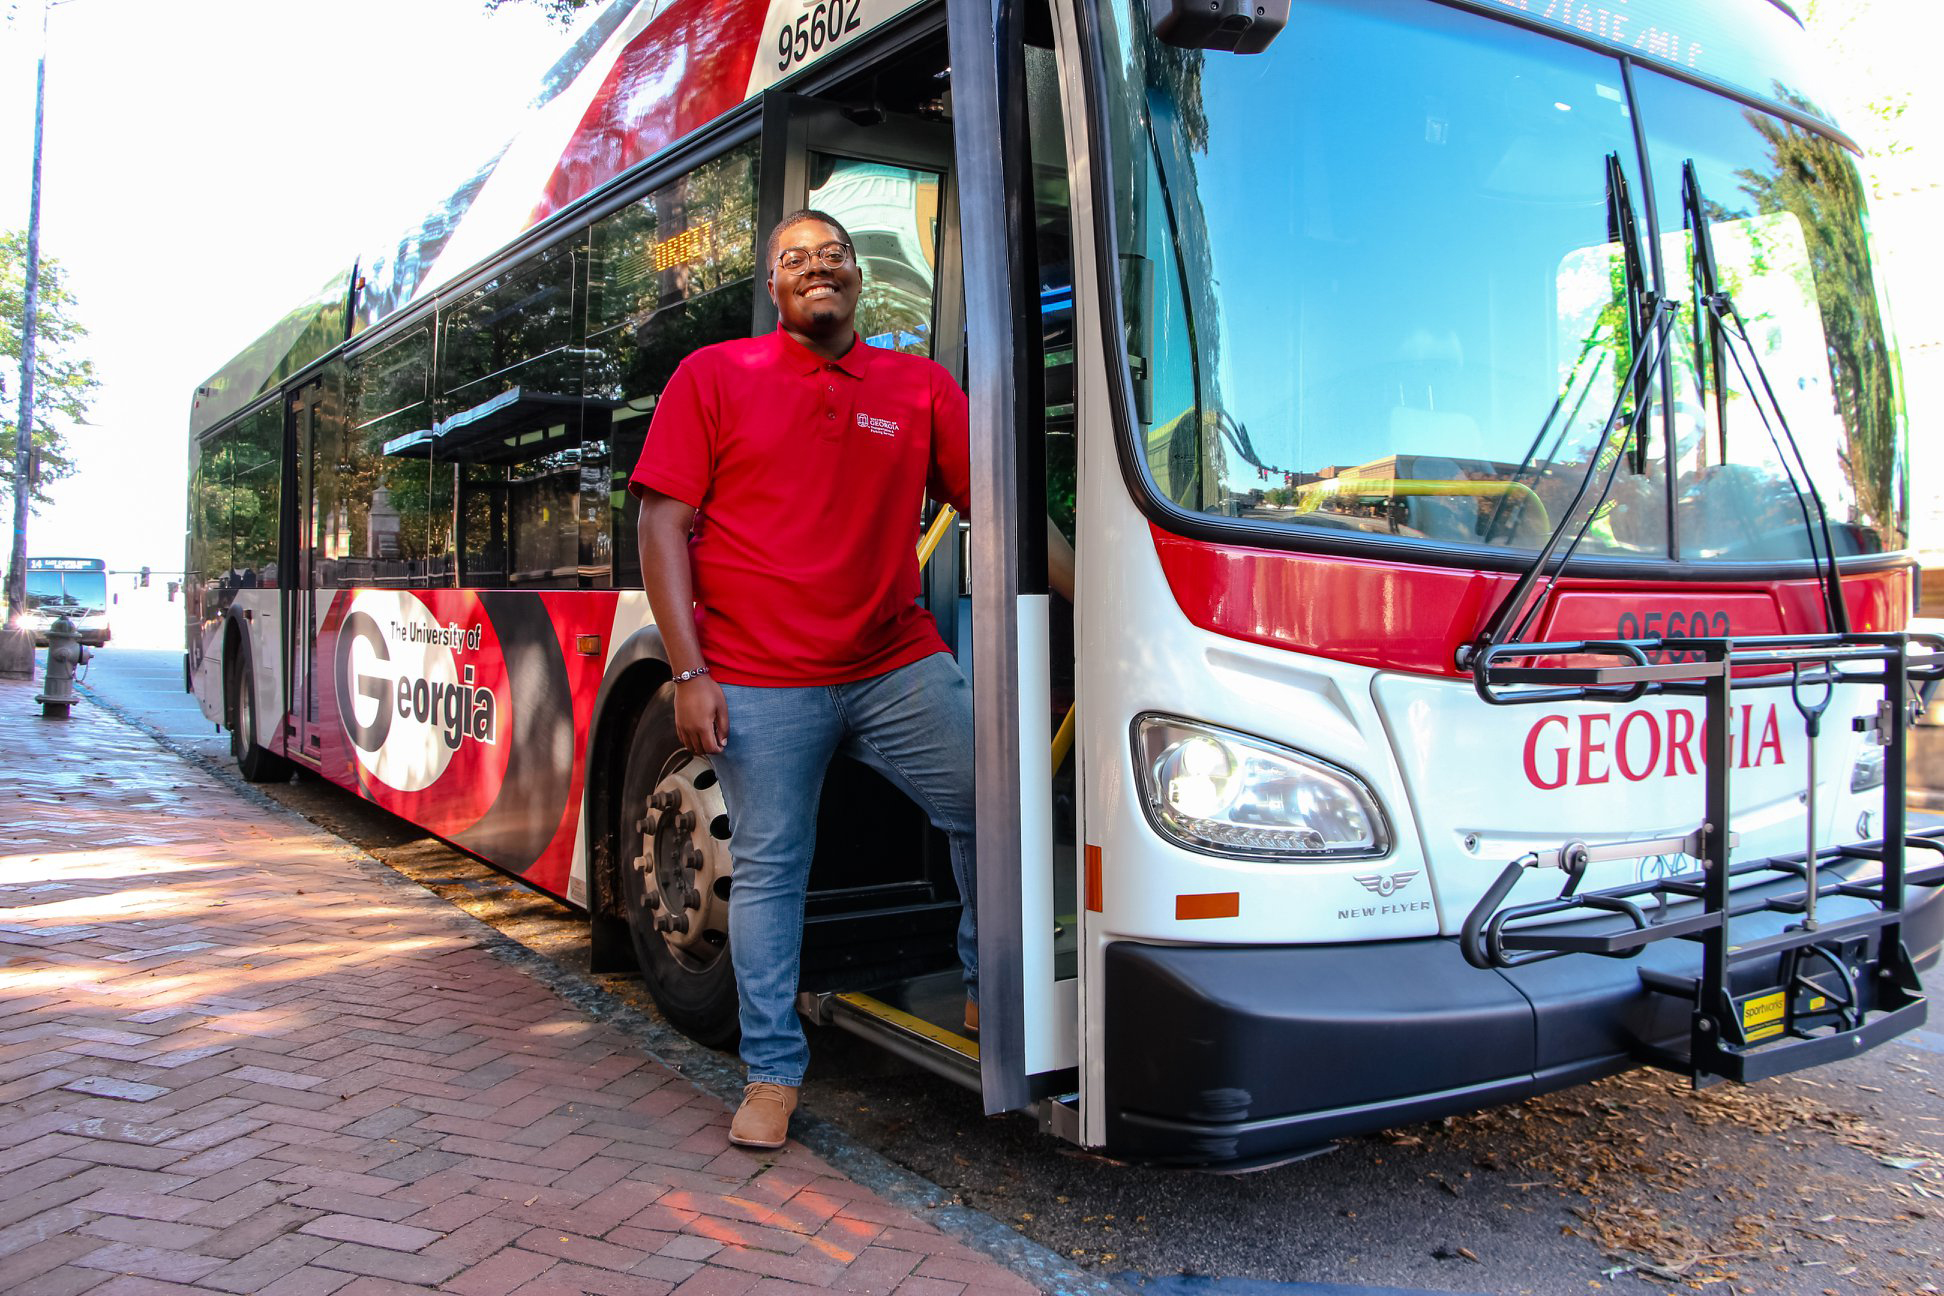 A bus driver stands next to a UGA bus.